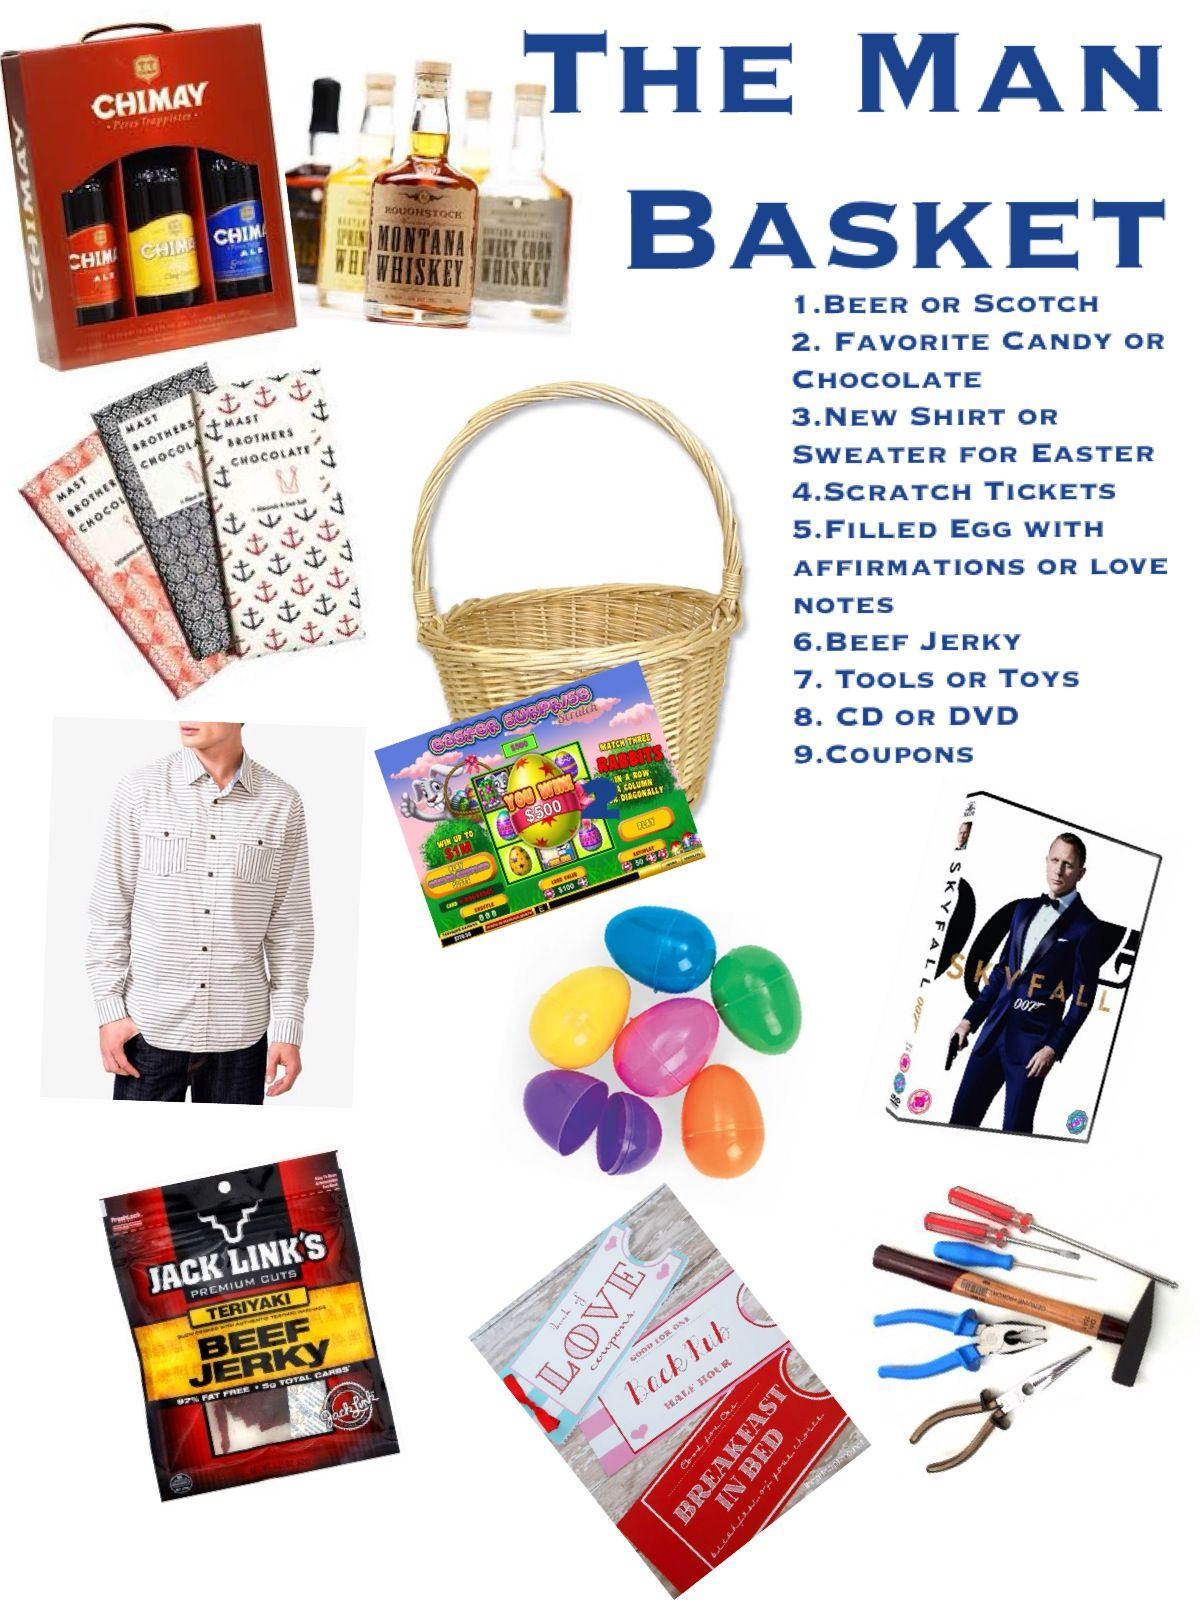 Man basket for the kid in all of our hubands triplet living cute ideas for a nice easter basket for stetson negle Image collections